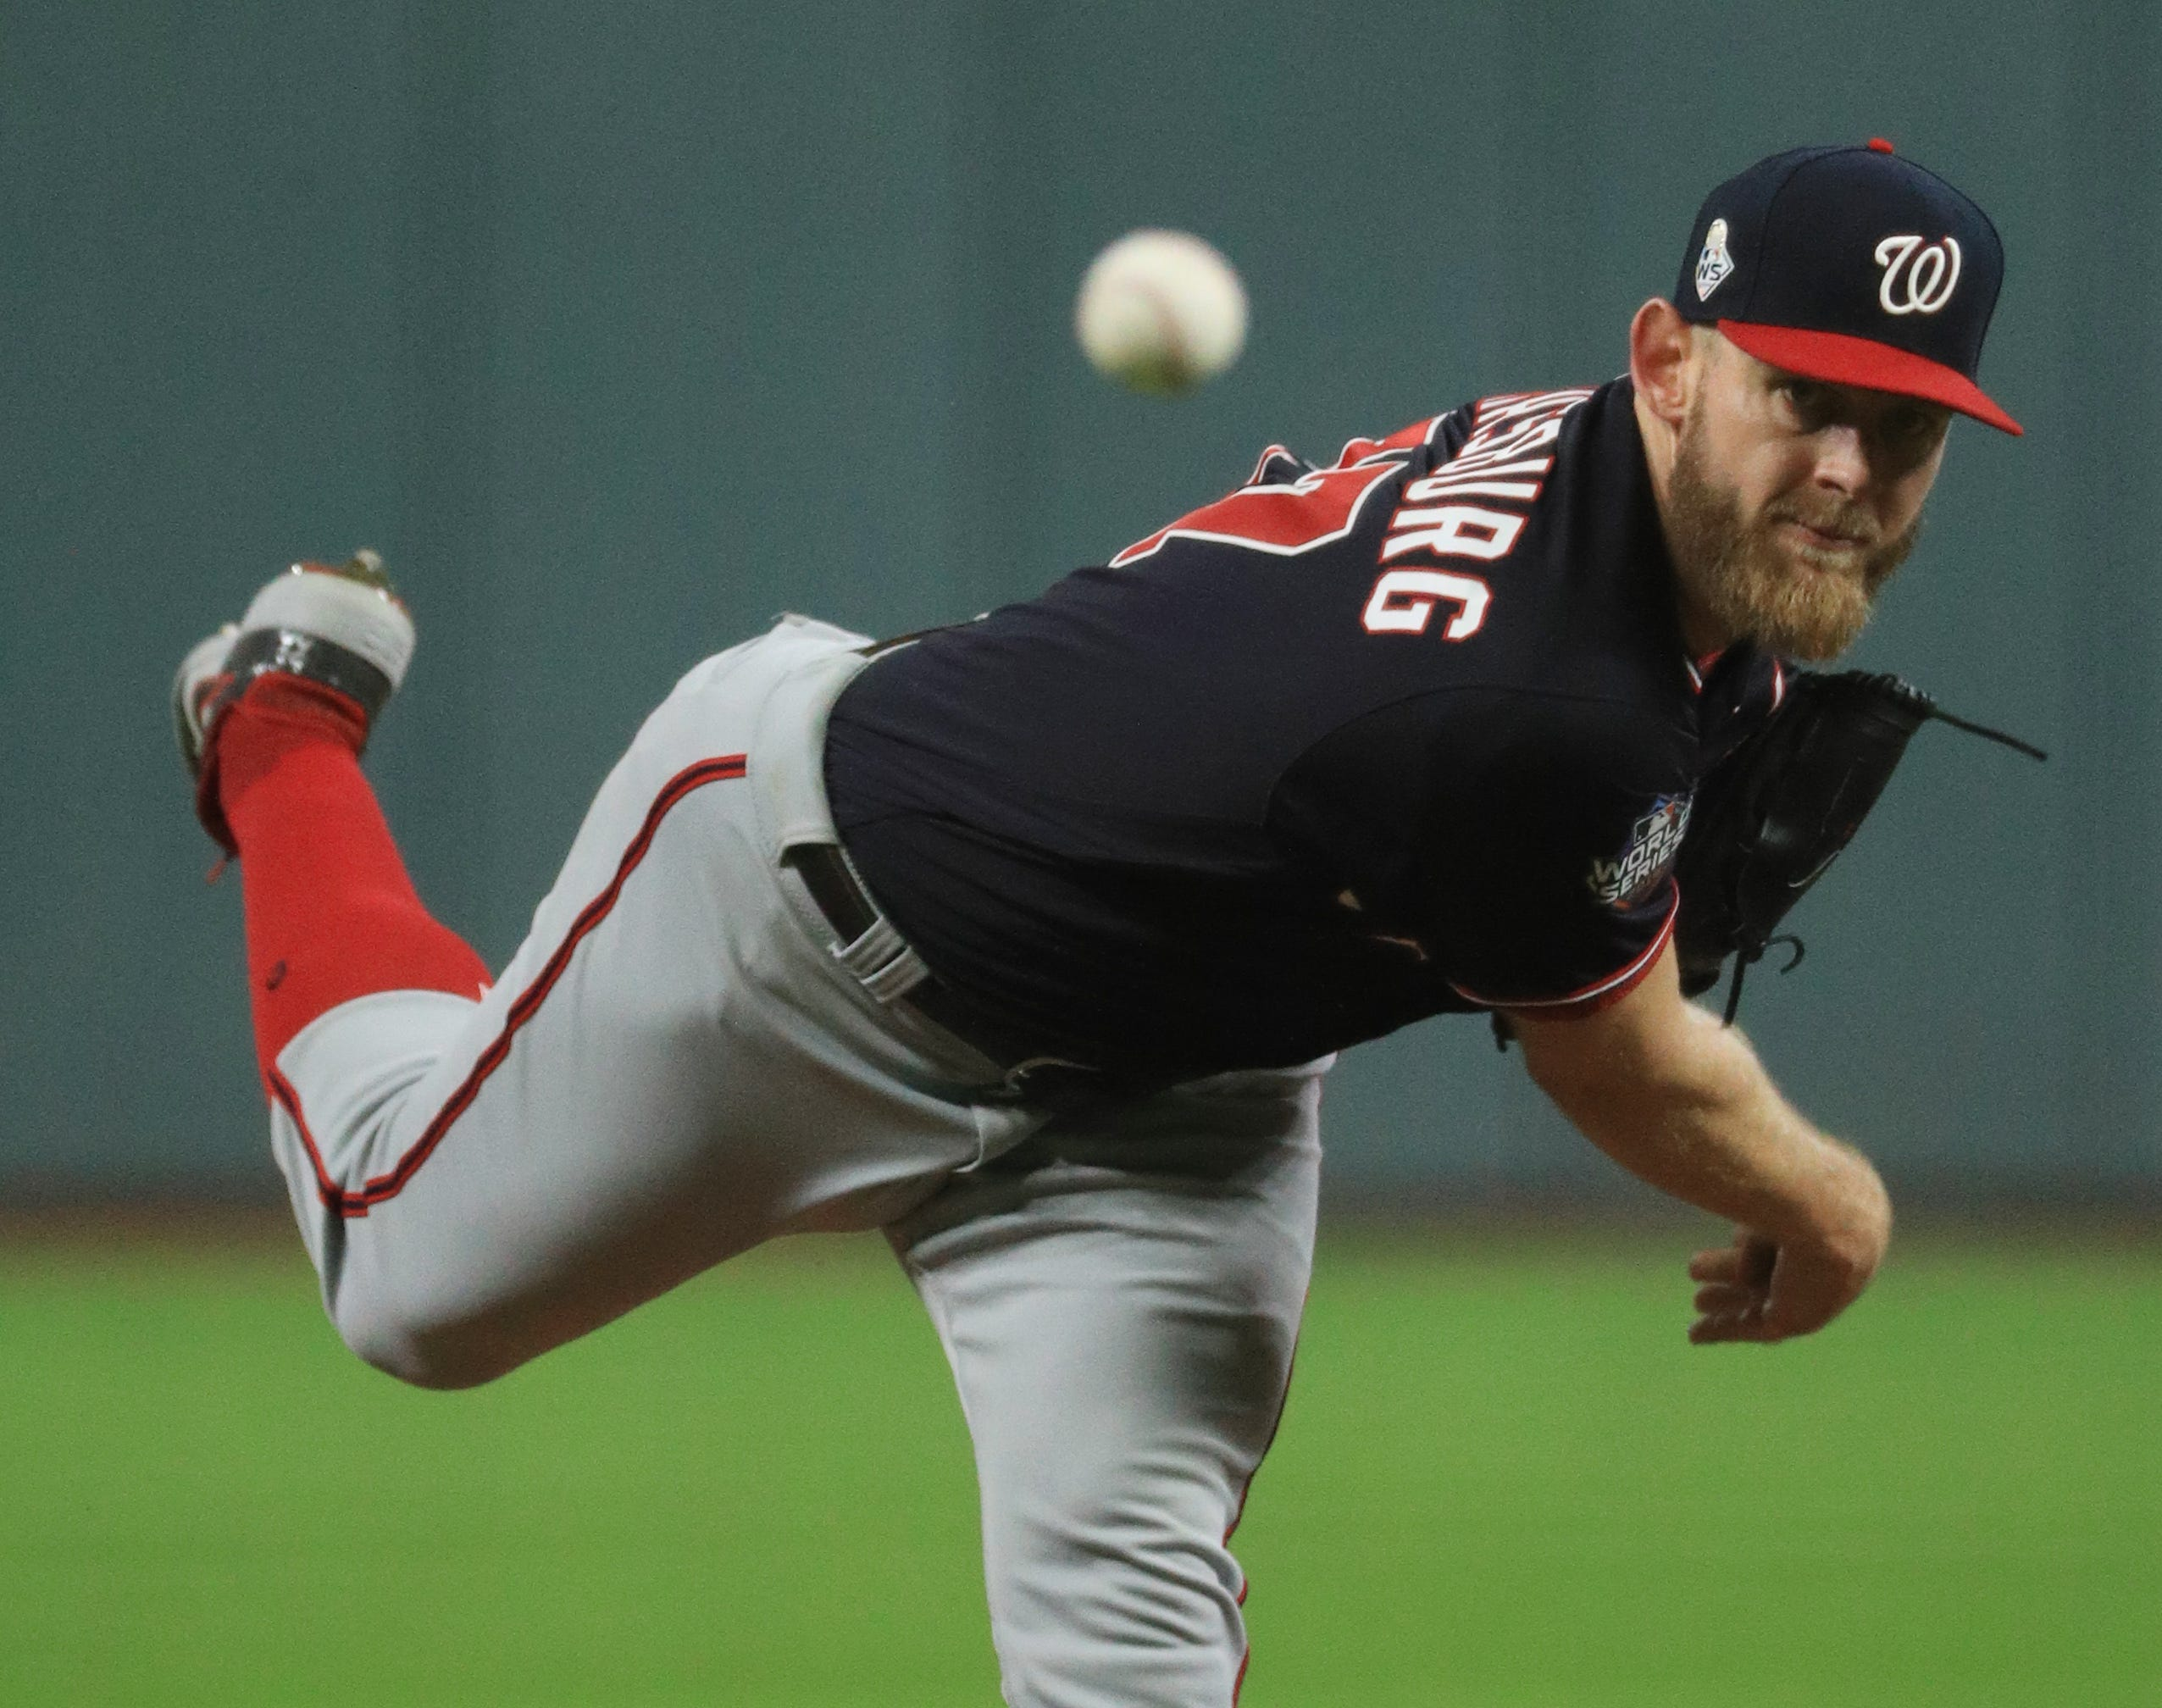 Opinion: Stephen Strasburg, Washington Nationals deal shows 2012 shutdown was right move